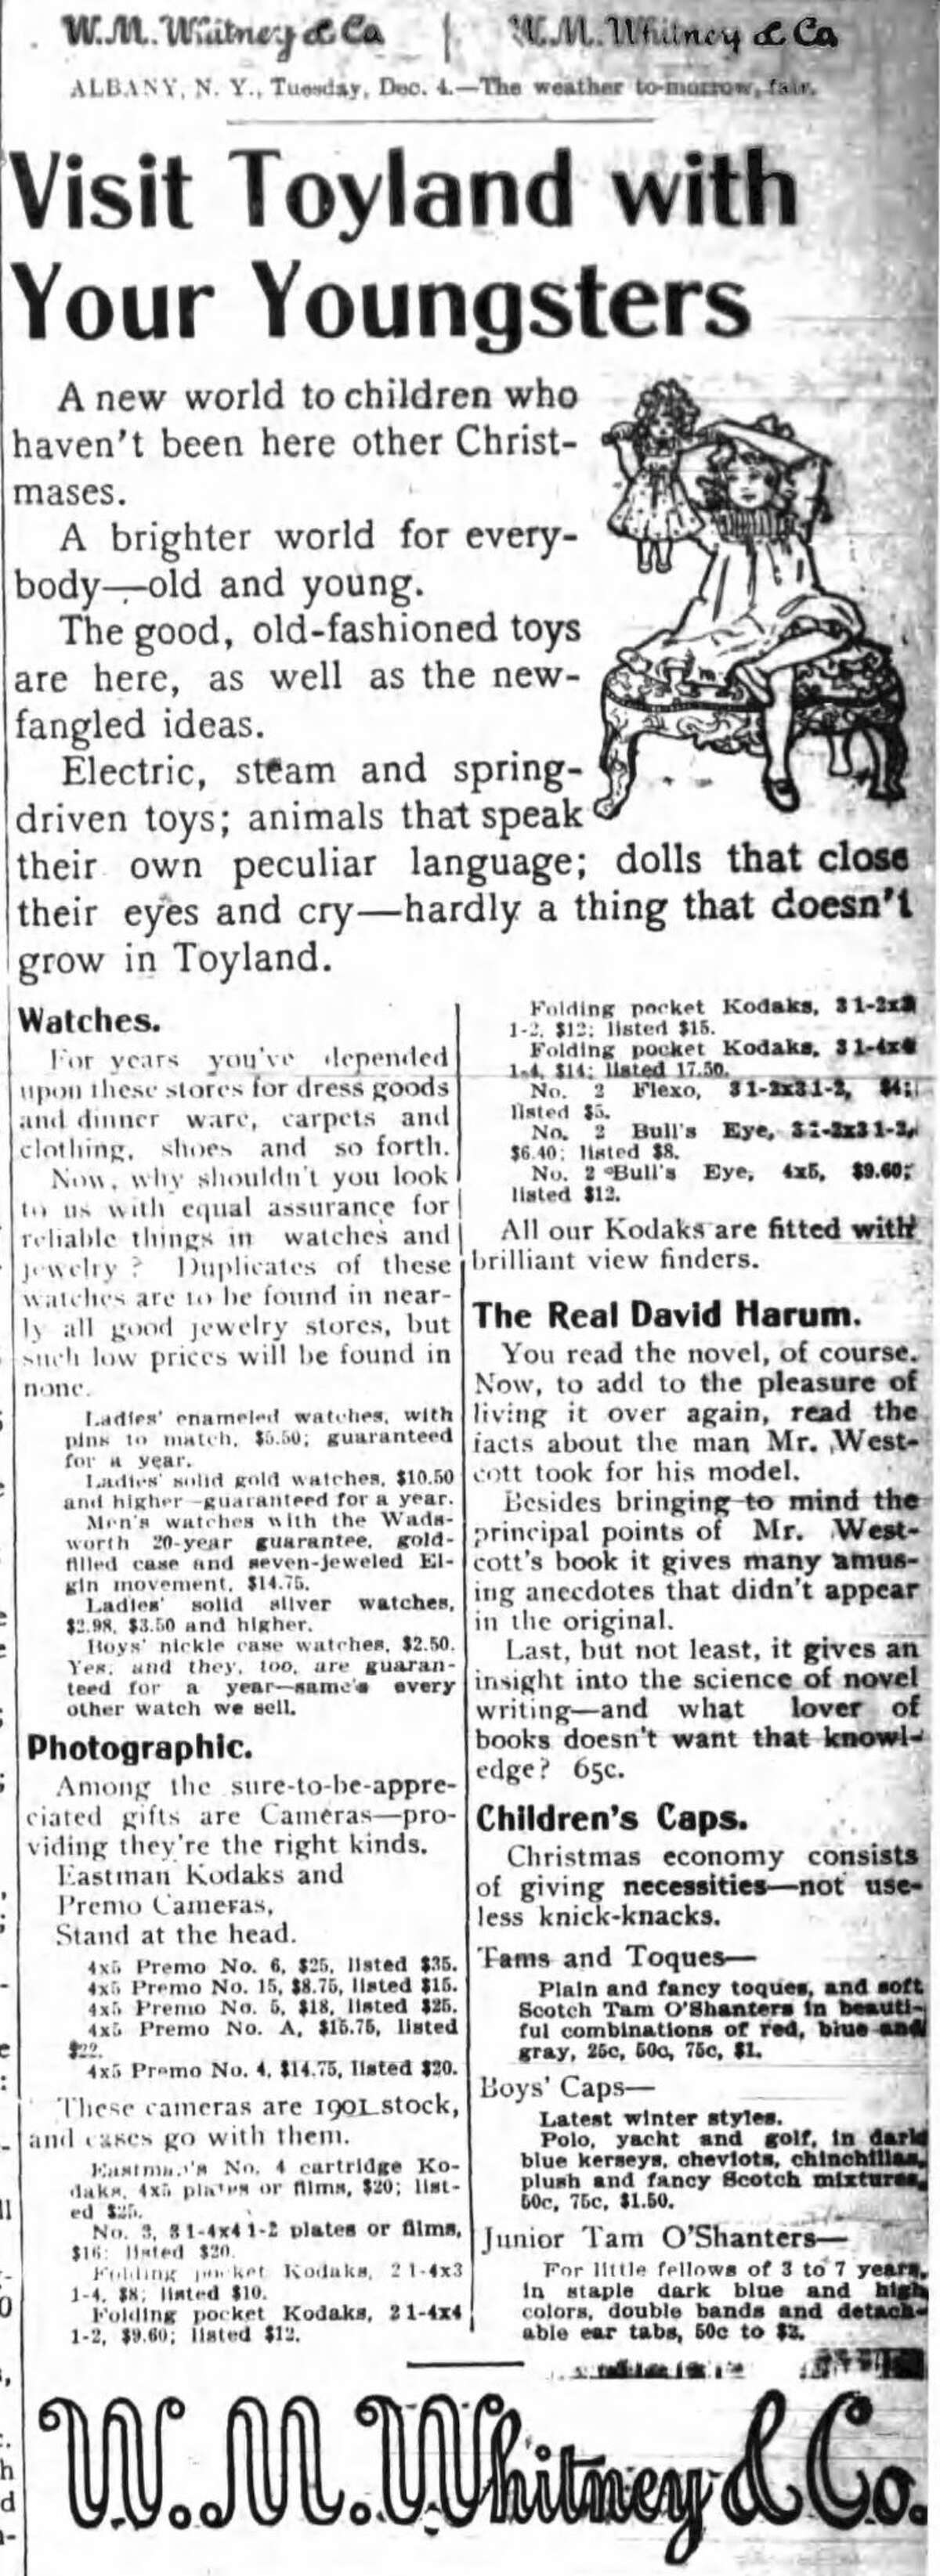 Dec. 4, 1900 ad in the Times Union.